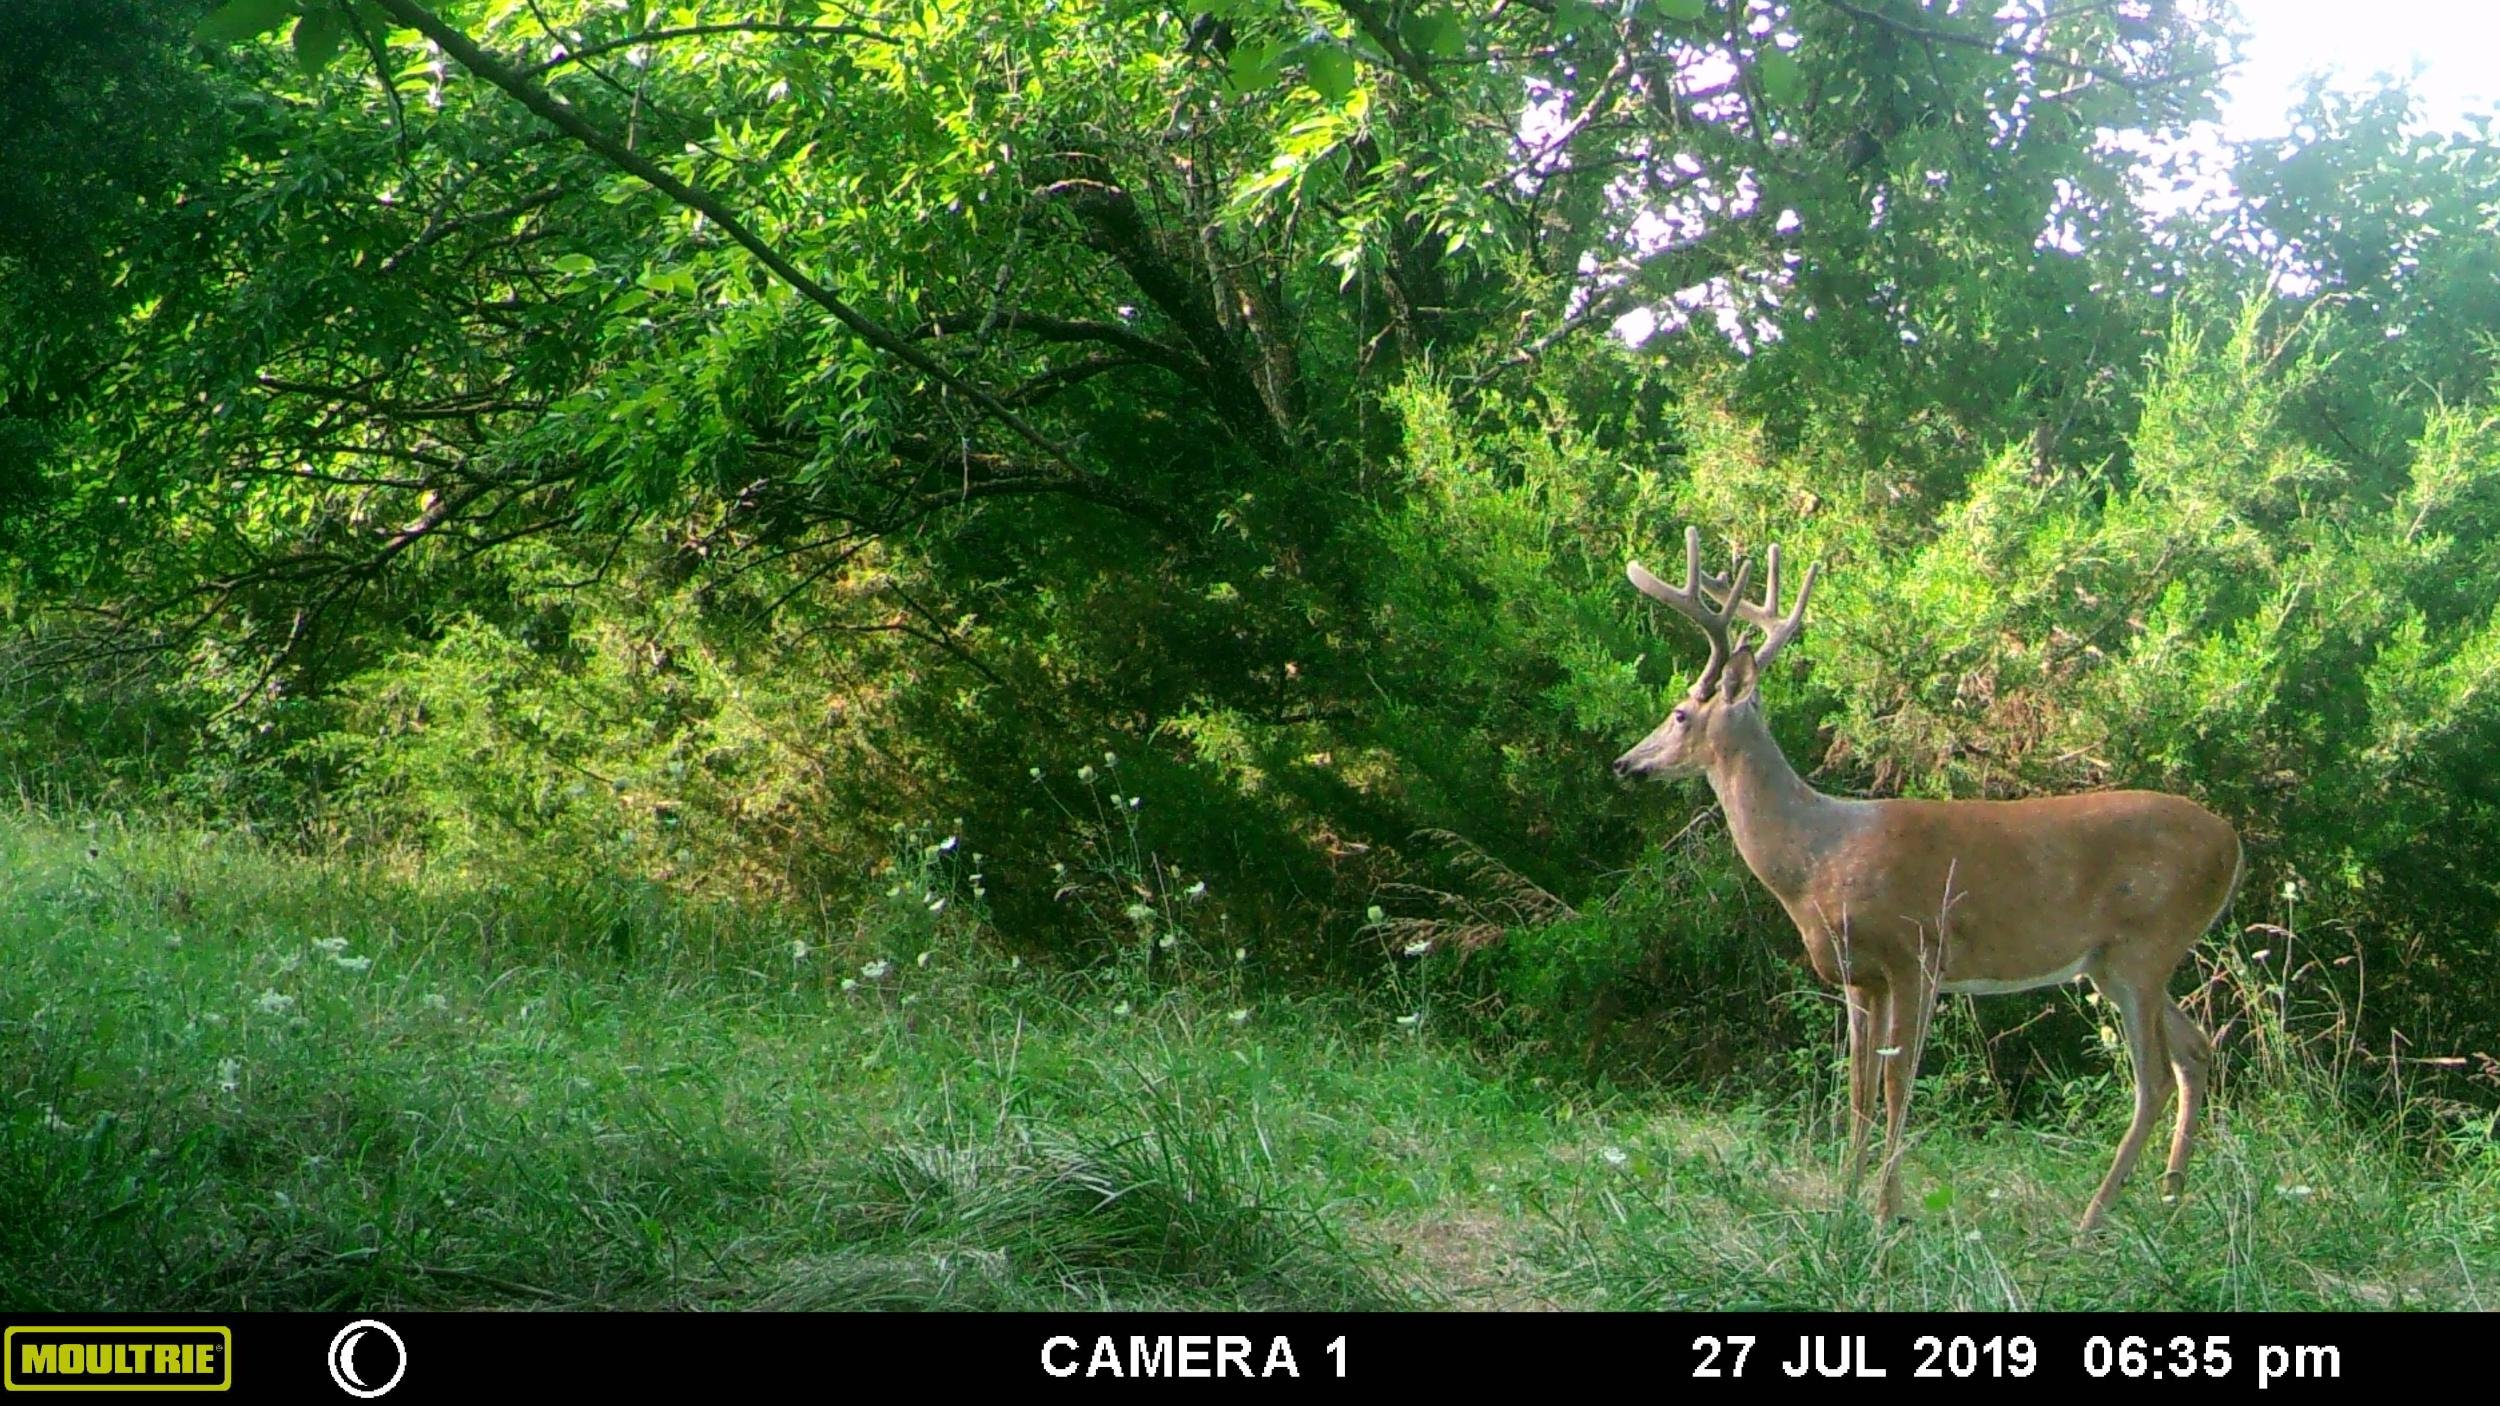 Click image for larger version.   Name:	2019 Buck 2.jpg  Views:	3  Size:	689.6 KB  ID:	6886759